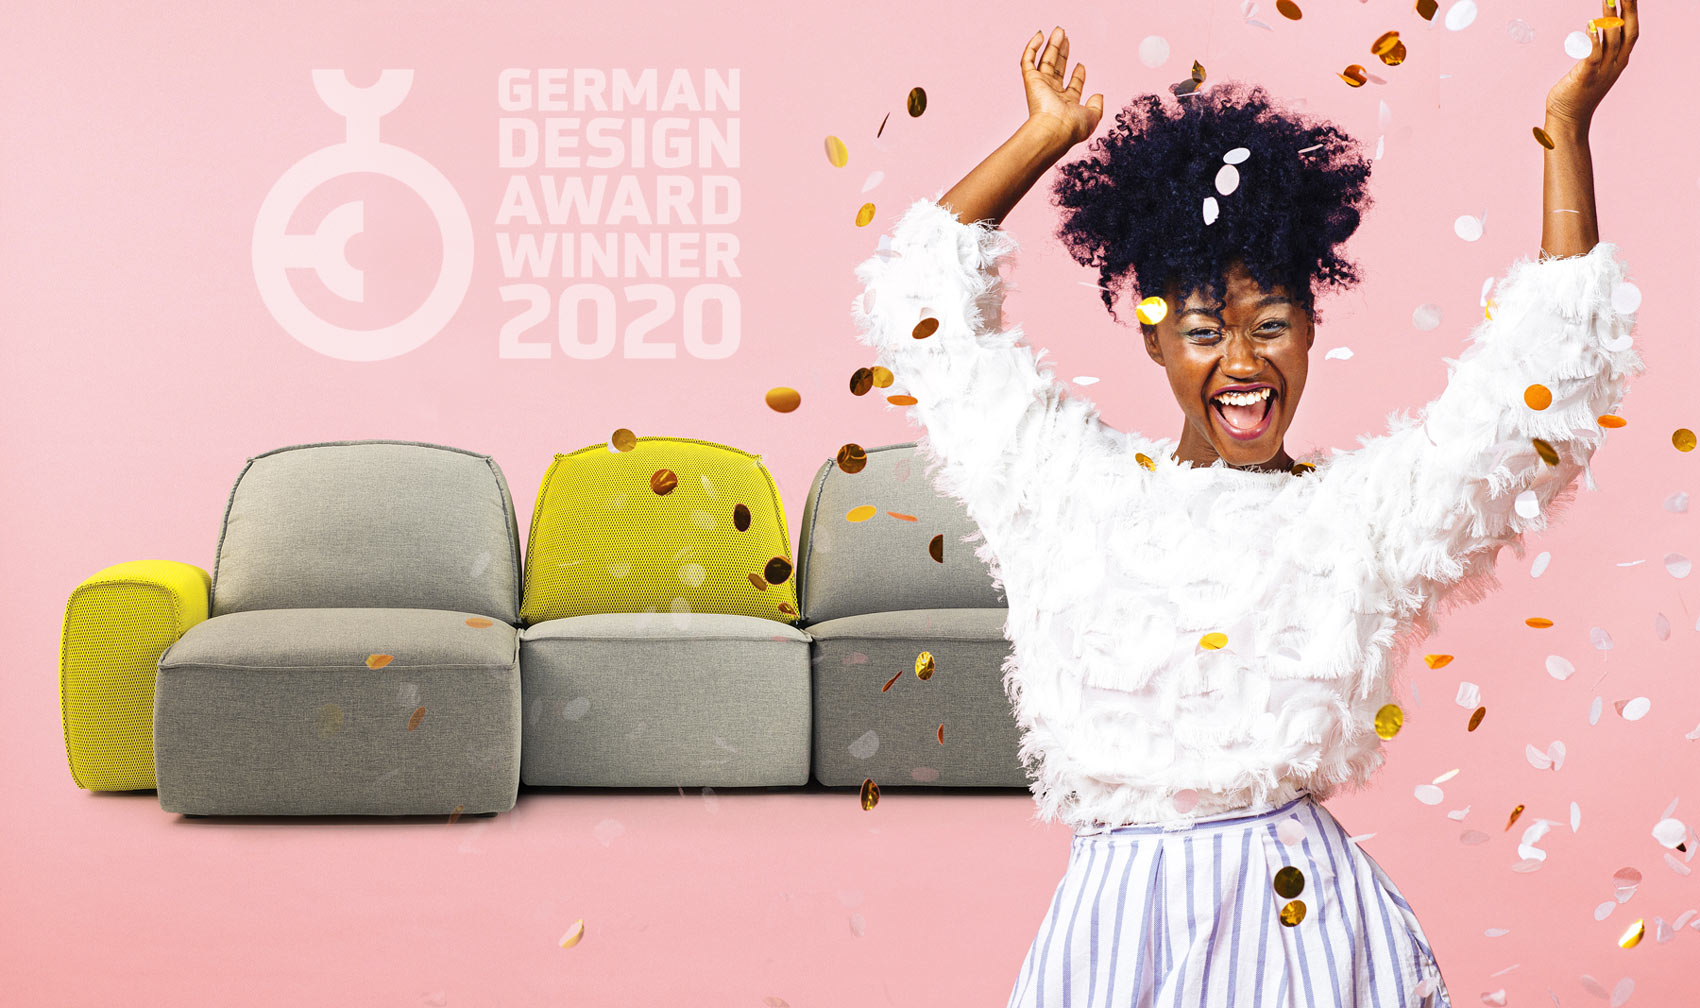 Lazy wins<br> German Design Award 2020